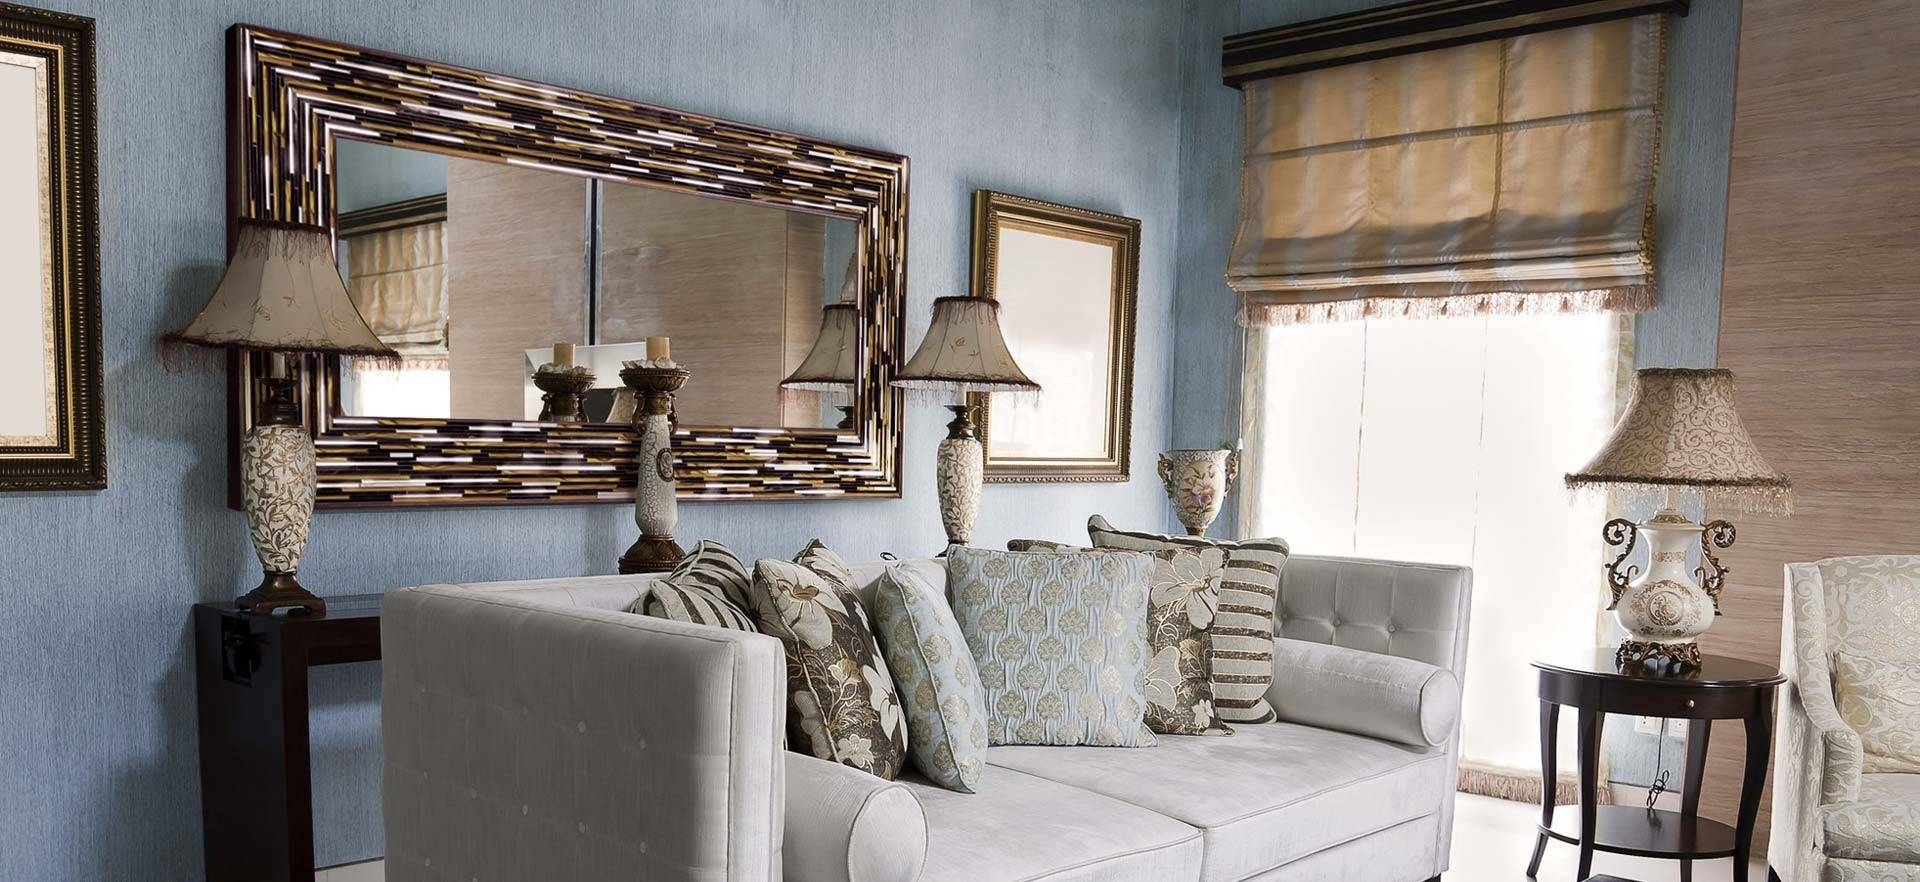 Handmade Mirrors. Luxury, Designer, Unusual And Modern - Piaggi within Unusual Mirrors (Image 11 of 25)